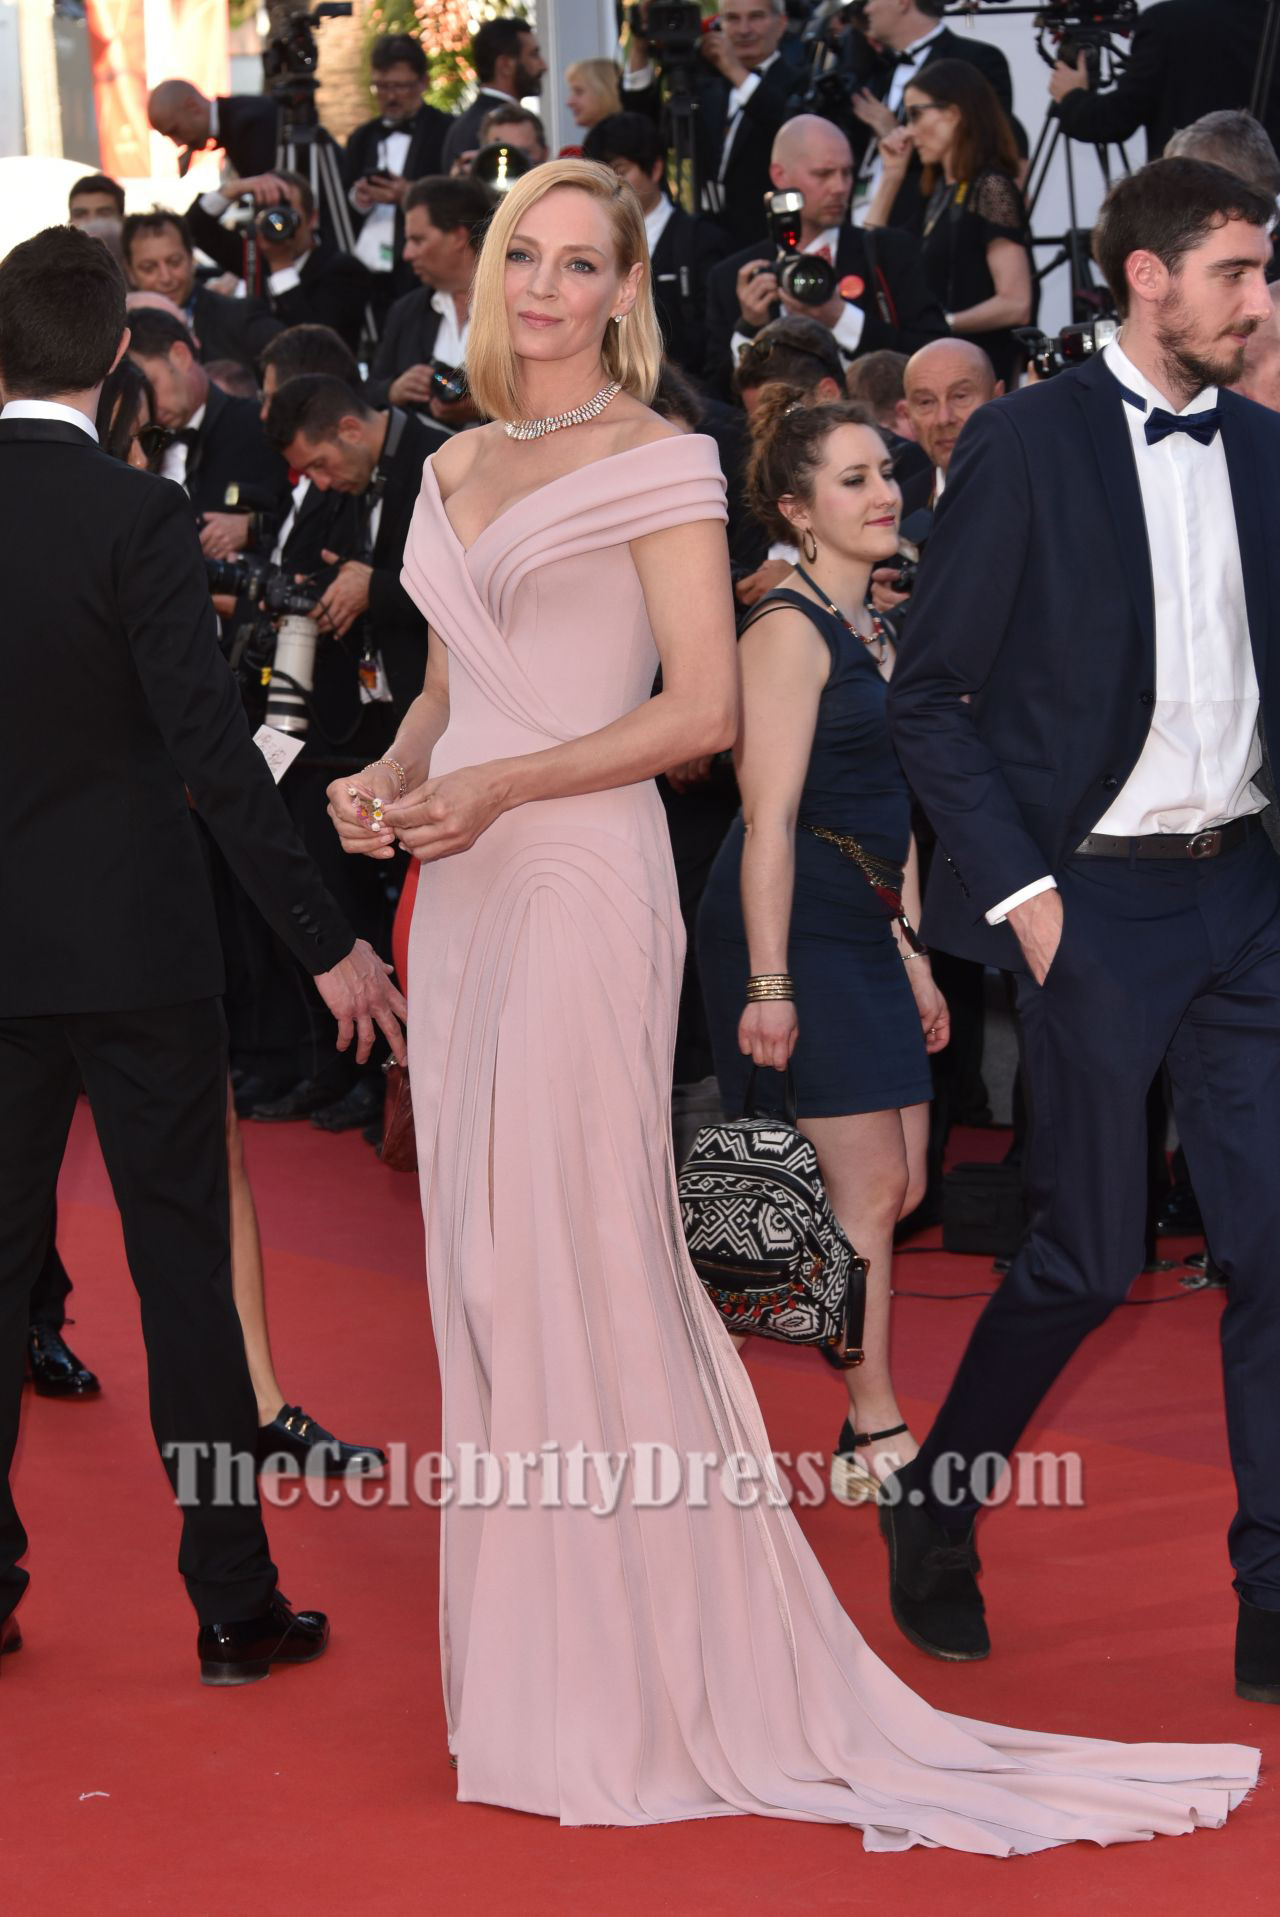 36824ced29 Uma Thurman Cannes Film Festival 2017 Red Carpet Evening Dress -  TheCelebrityDresses